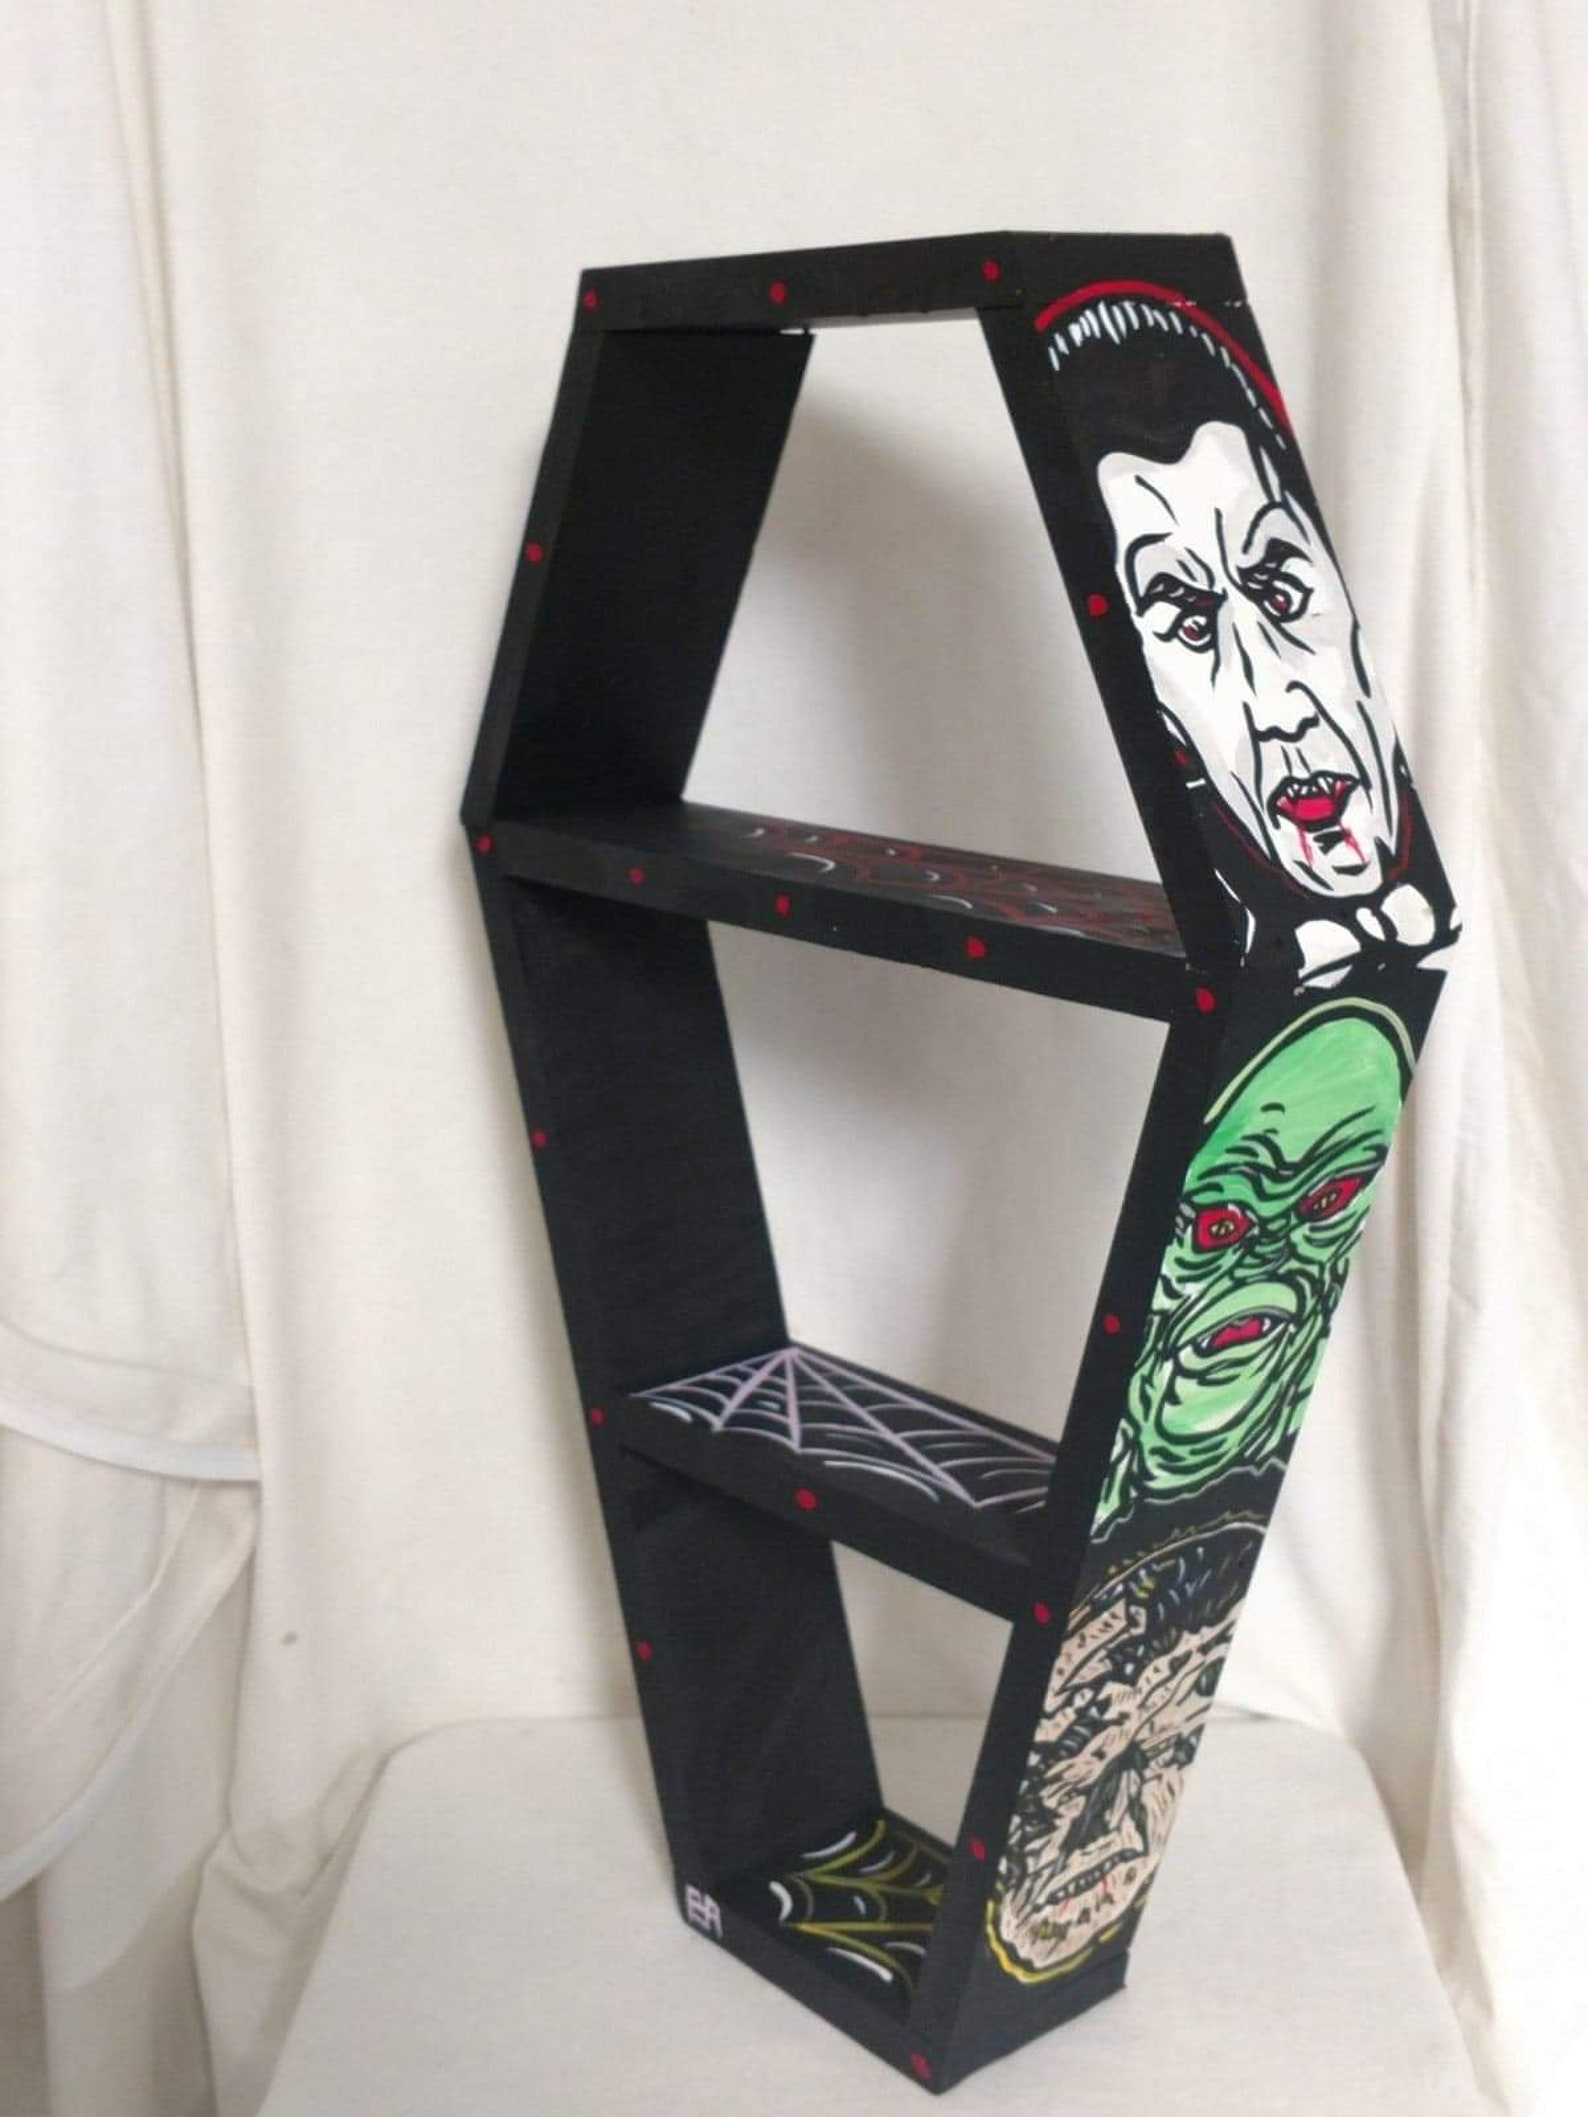 Classic Monsters Coffin Tabletop and Wall Shelves by Blackened Art Design